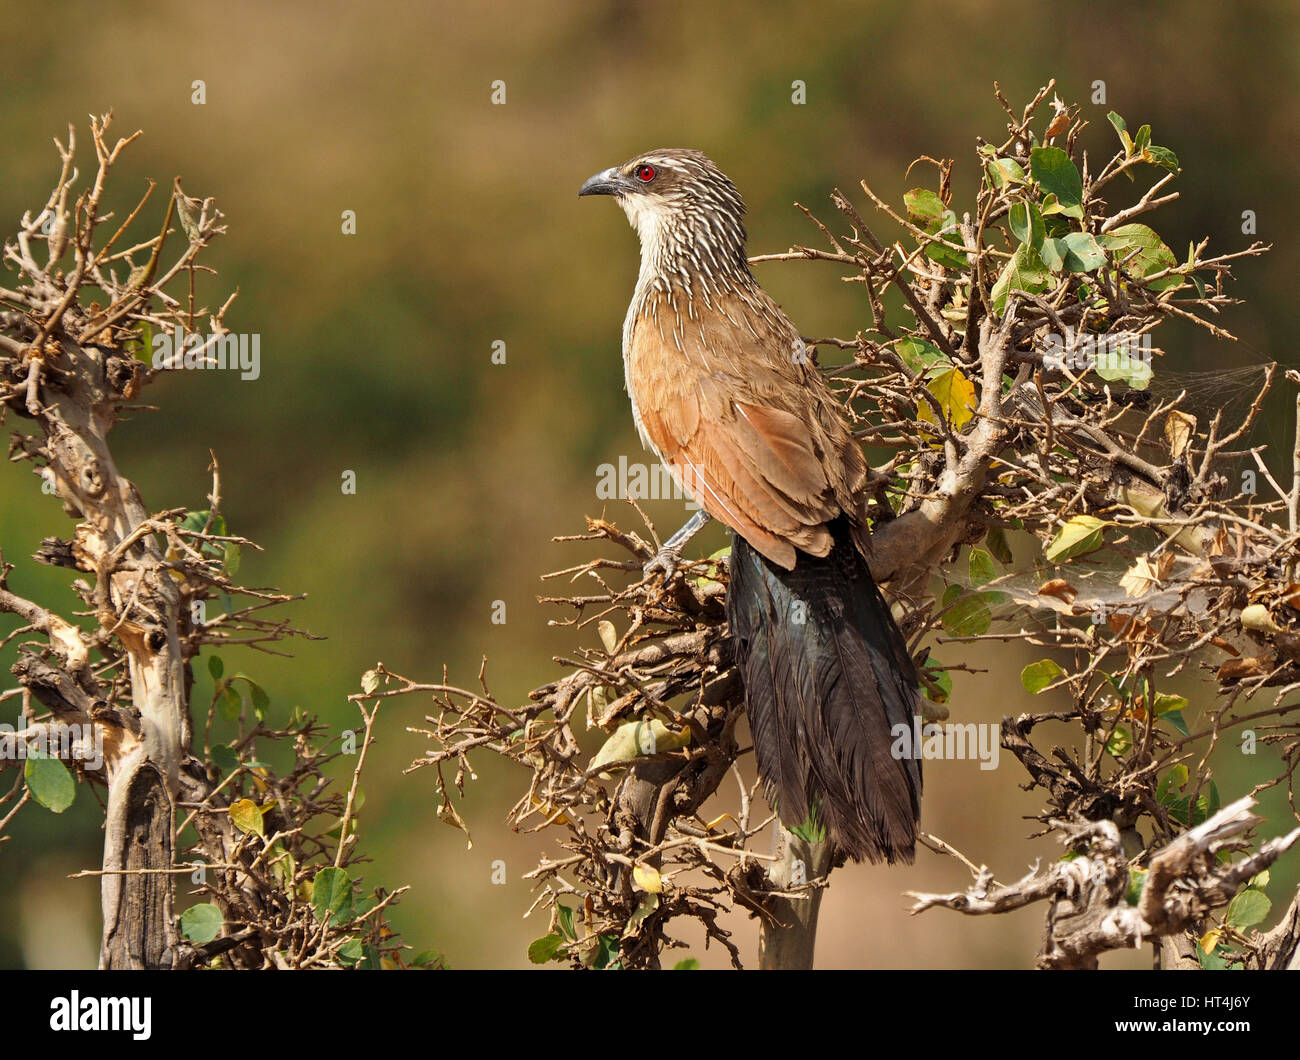 White-browed Coucal (Centropus superciliosus) in the Mara Conservancies, Greater Mara, Kenya Africa - Stock Image